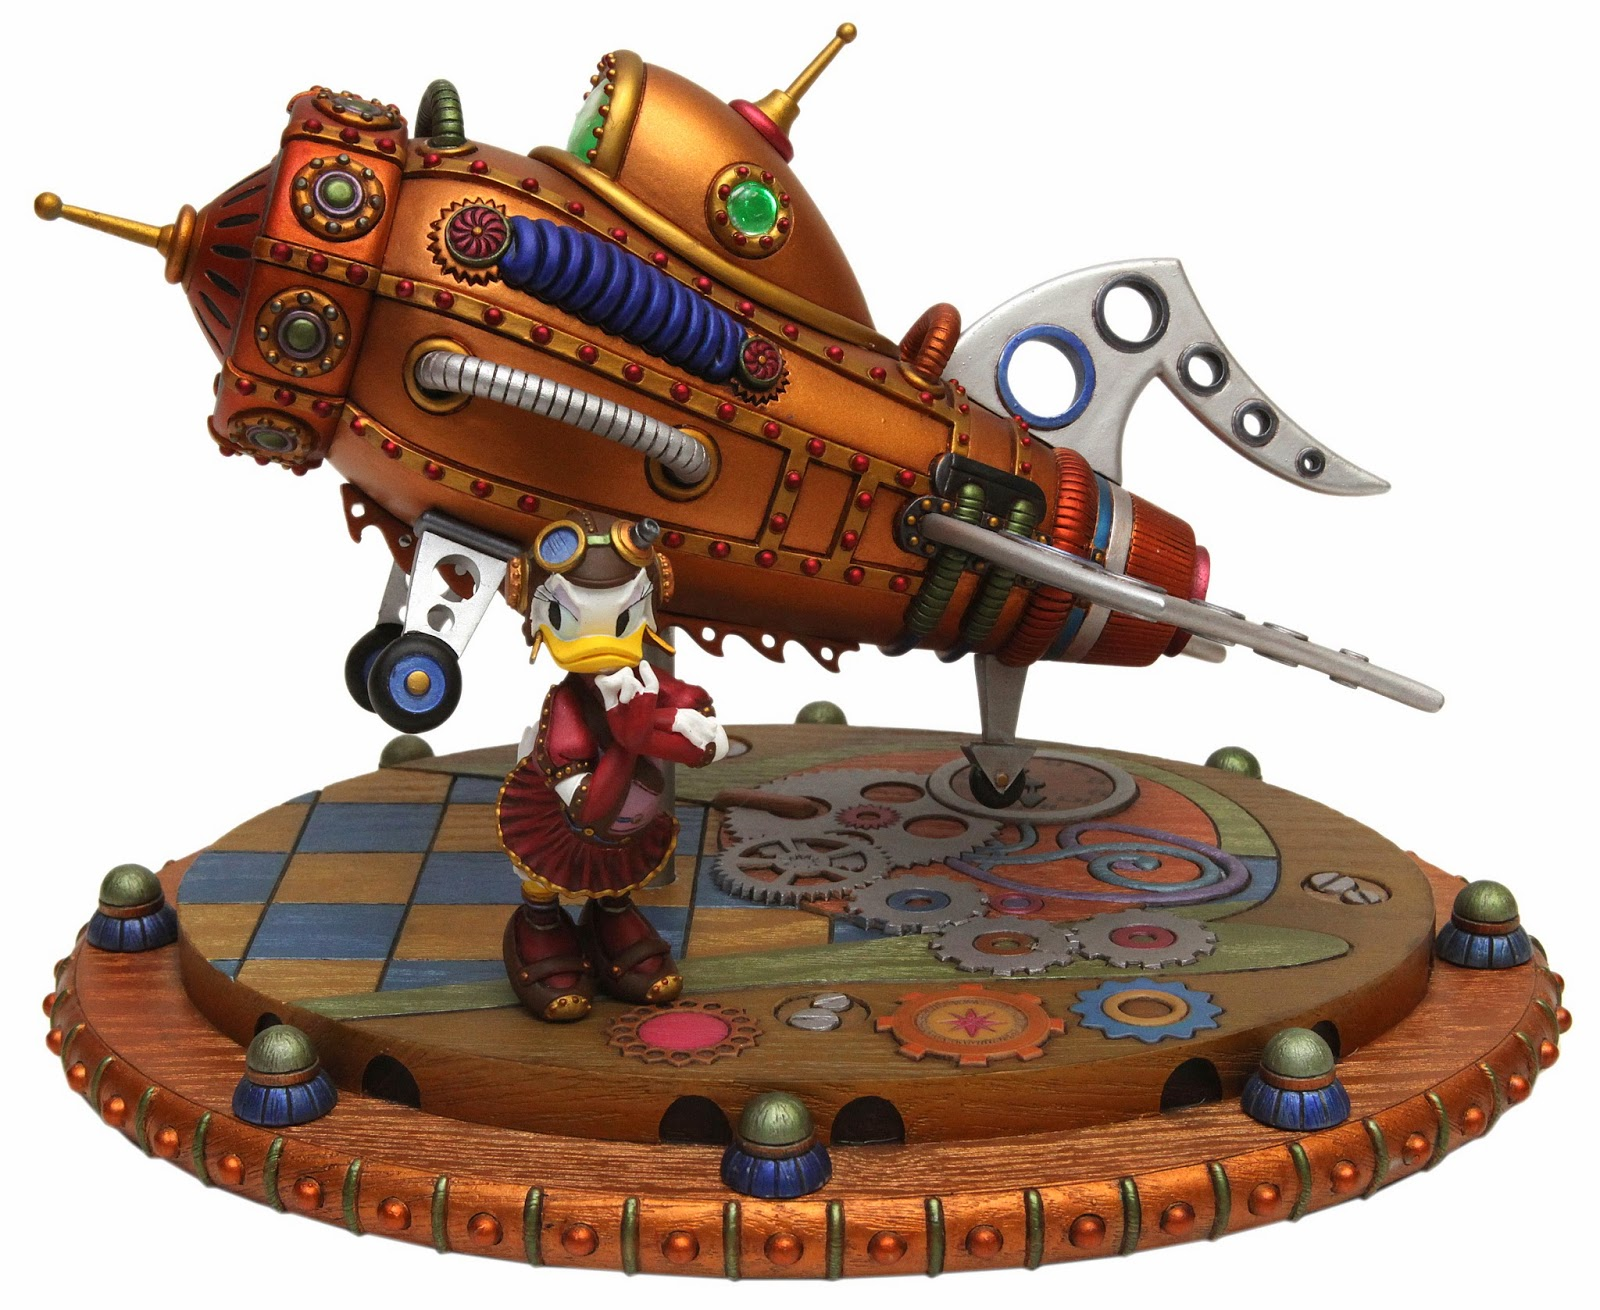 Daisy Duck Rocket Steampunk Gears Mechanical Kingdom Walt Disney World Disneyland statue figure figurine